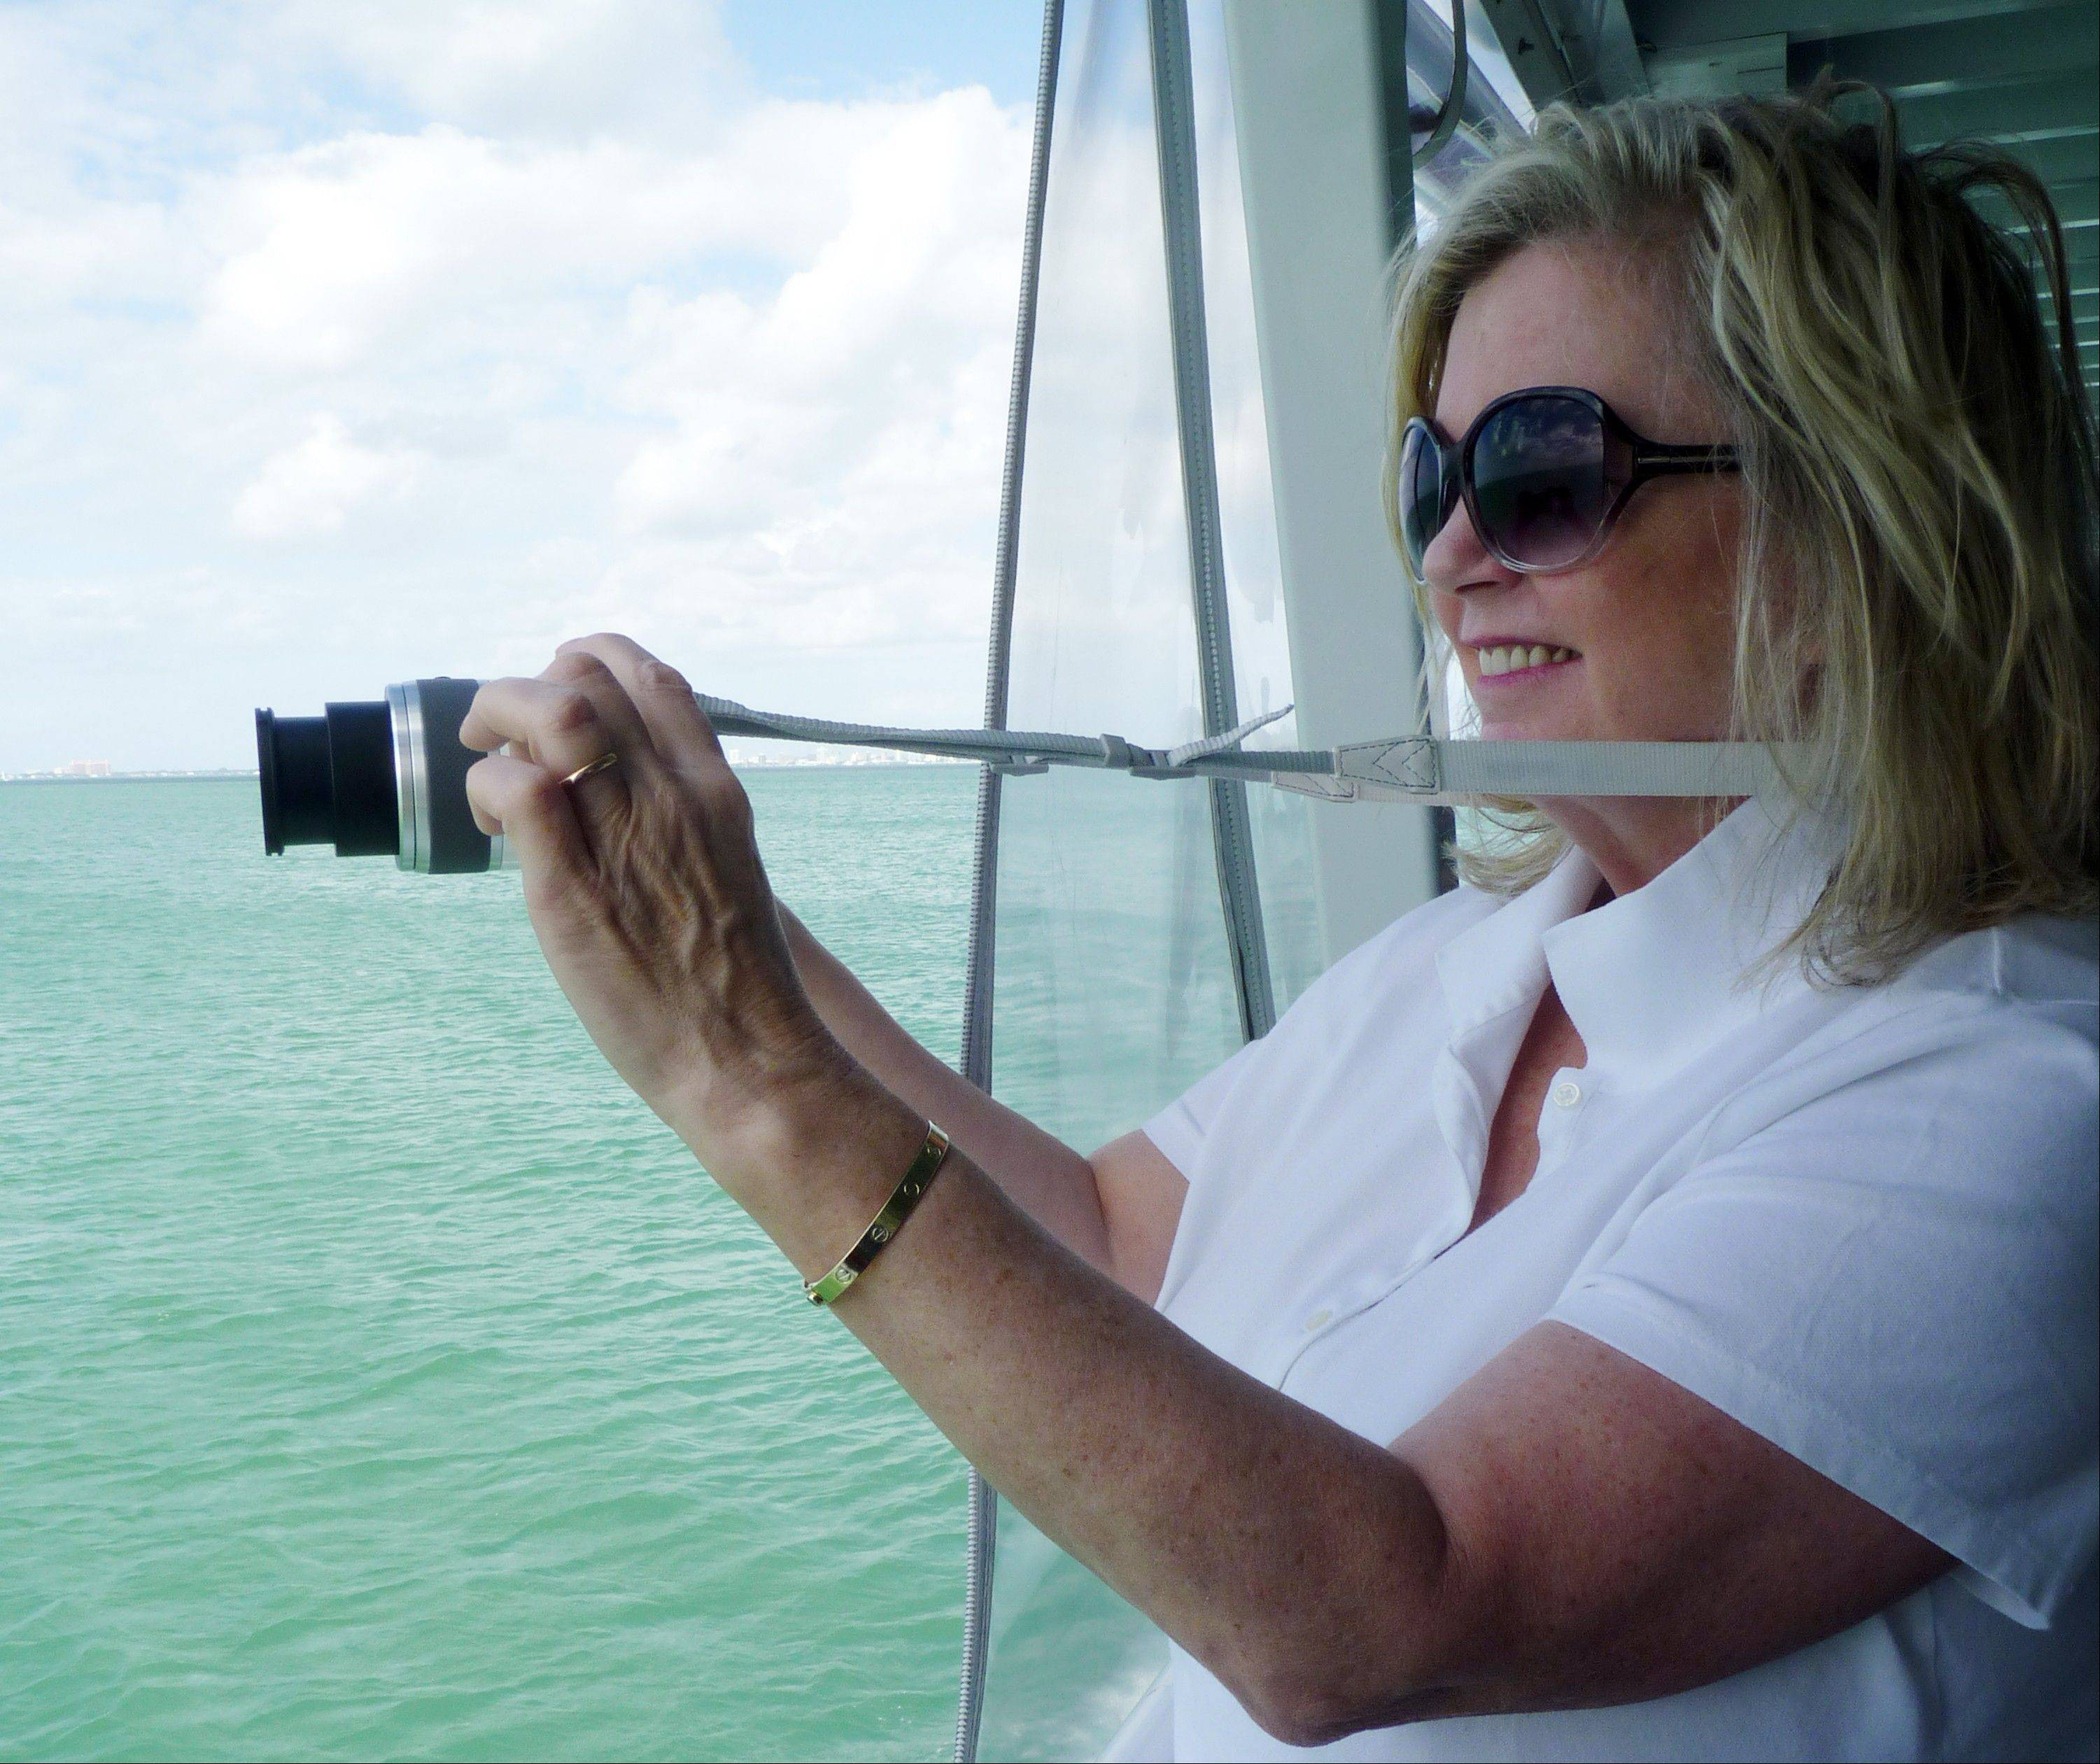 Karen Clark of Saratoga Springs, N.Y., takes a photo of one of the seven Stiltsville homes near Miami.